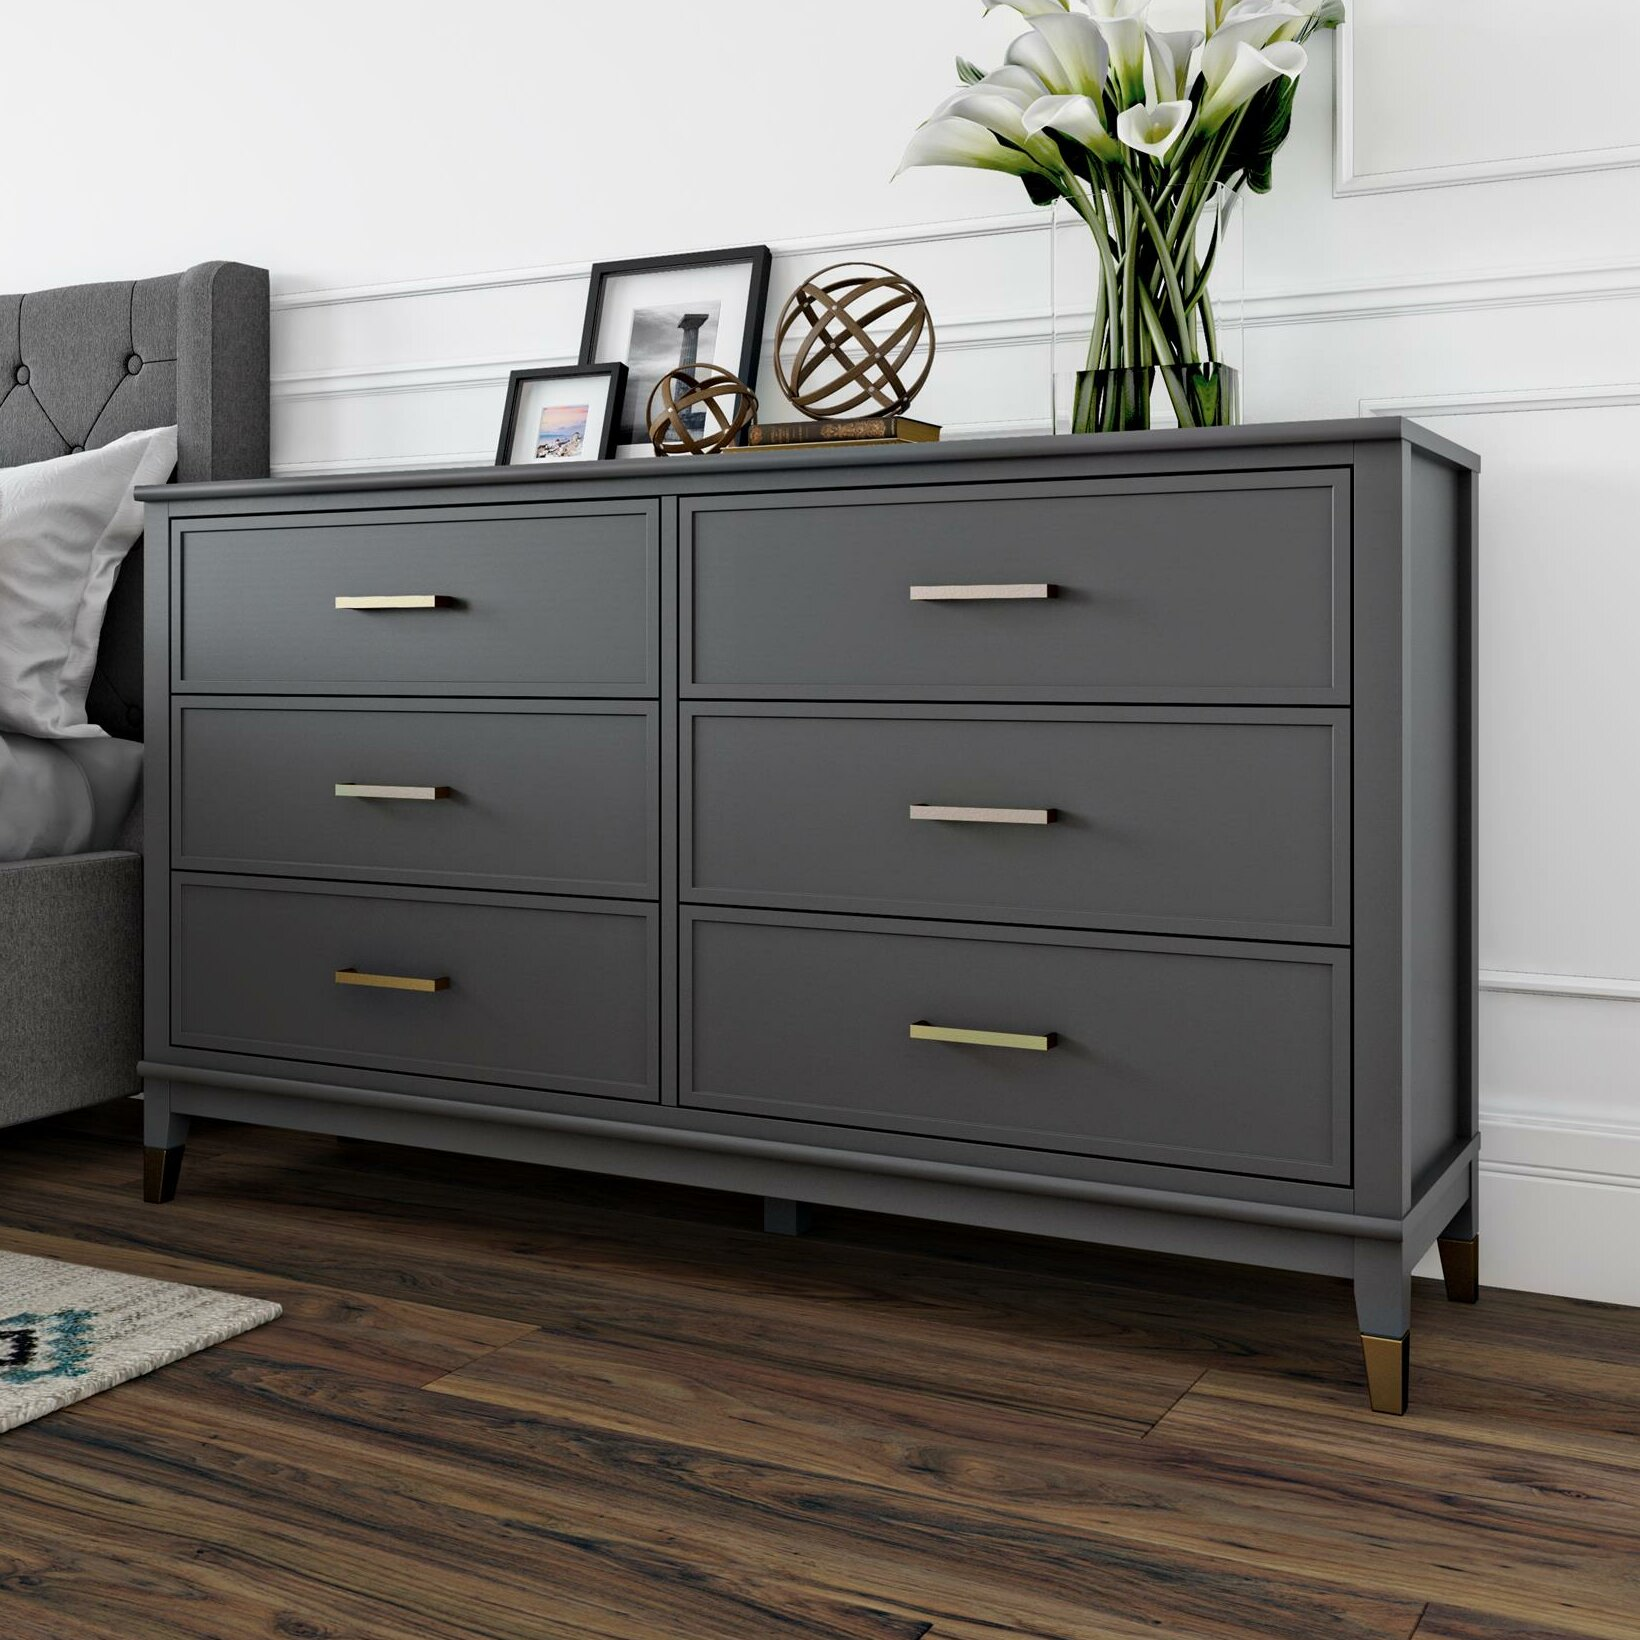 Cosmoliving By Cosmopolitan Westerleigh 6 Drawer Double Dresser